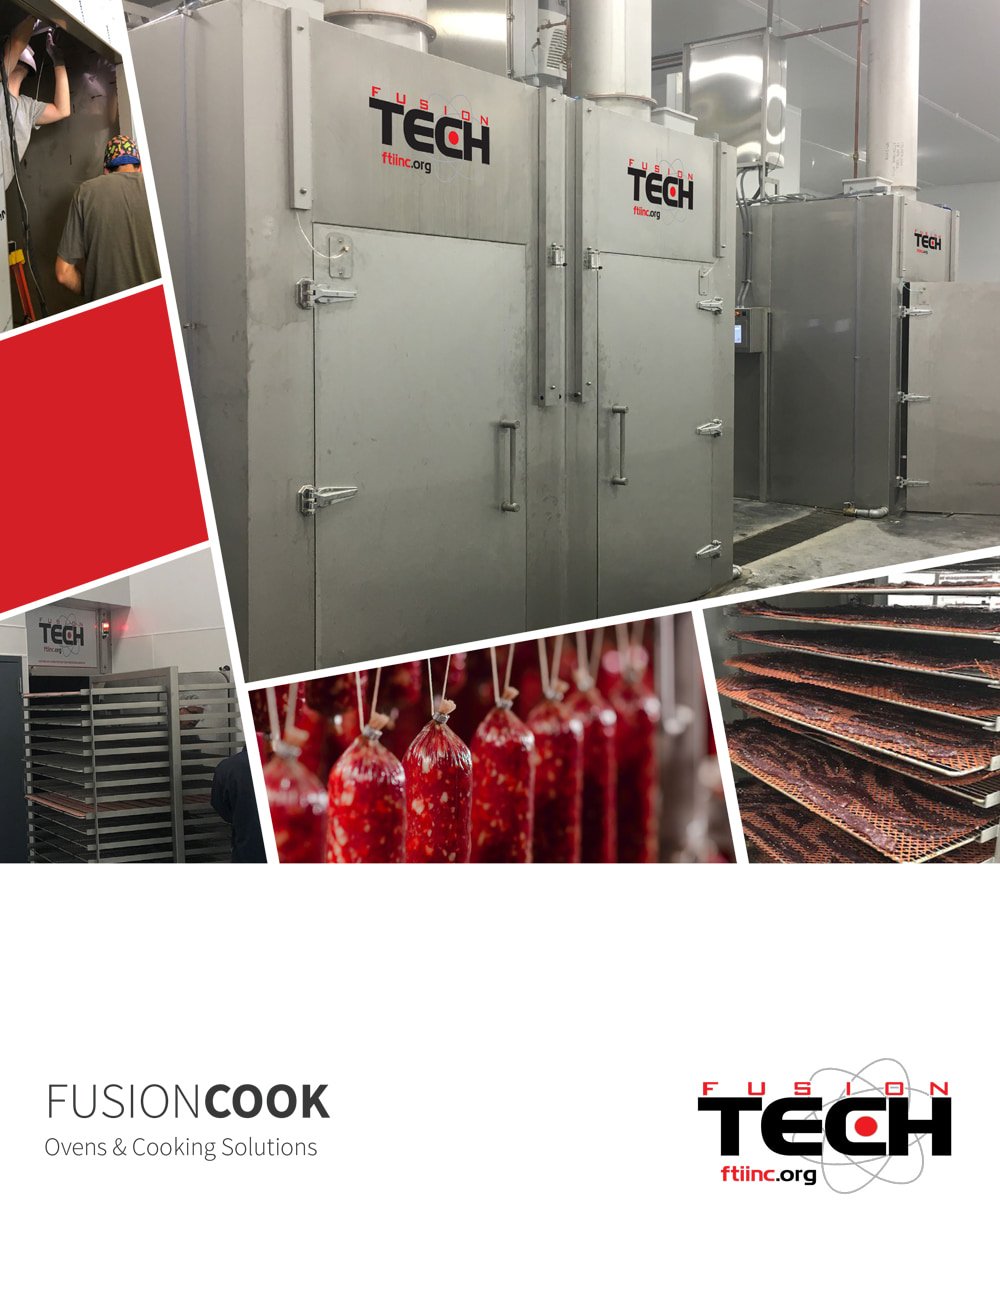 fusion cook catalog cover